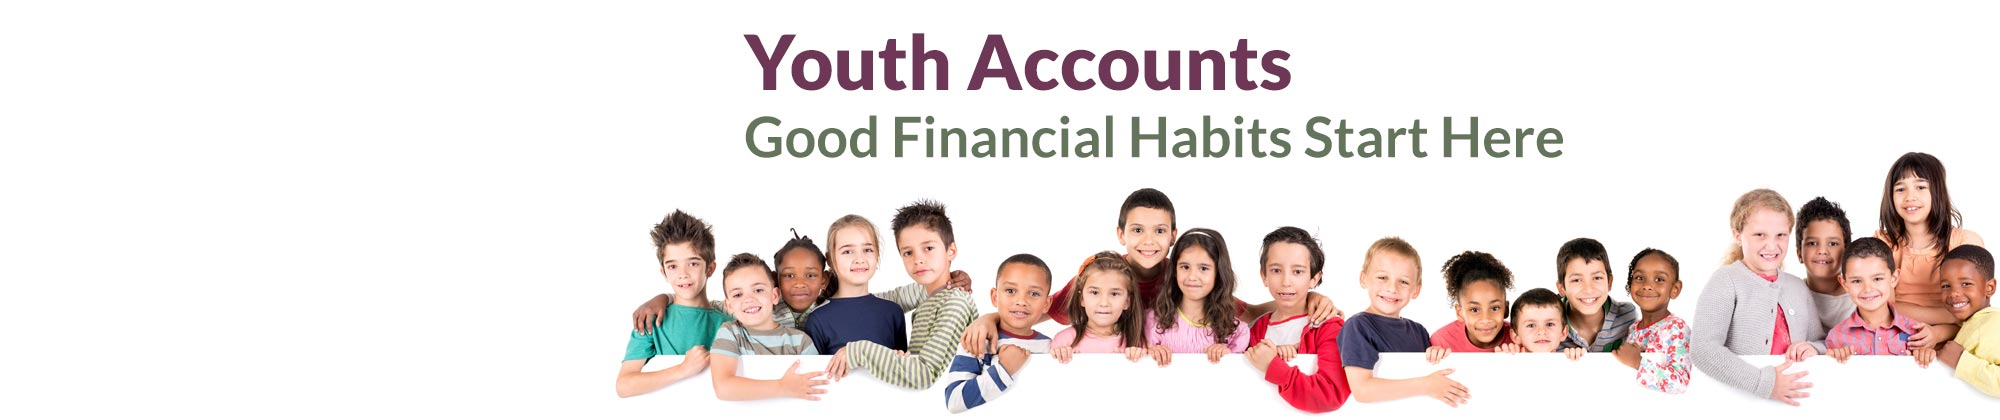 Youth Accounts 